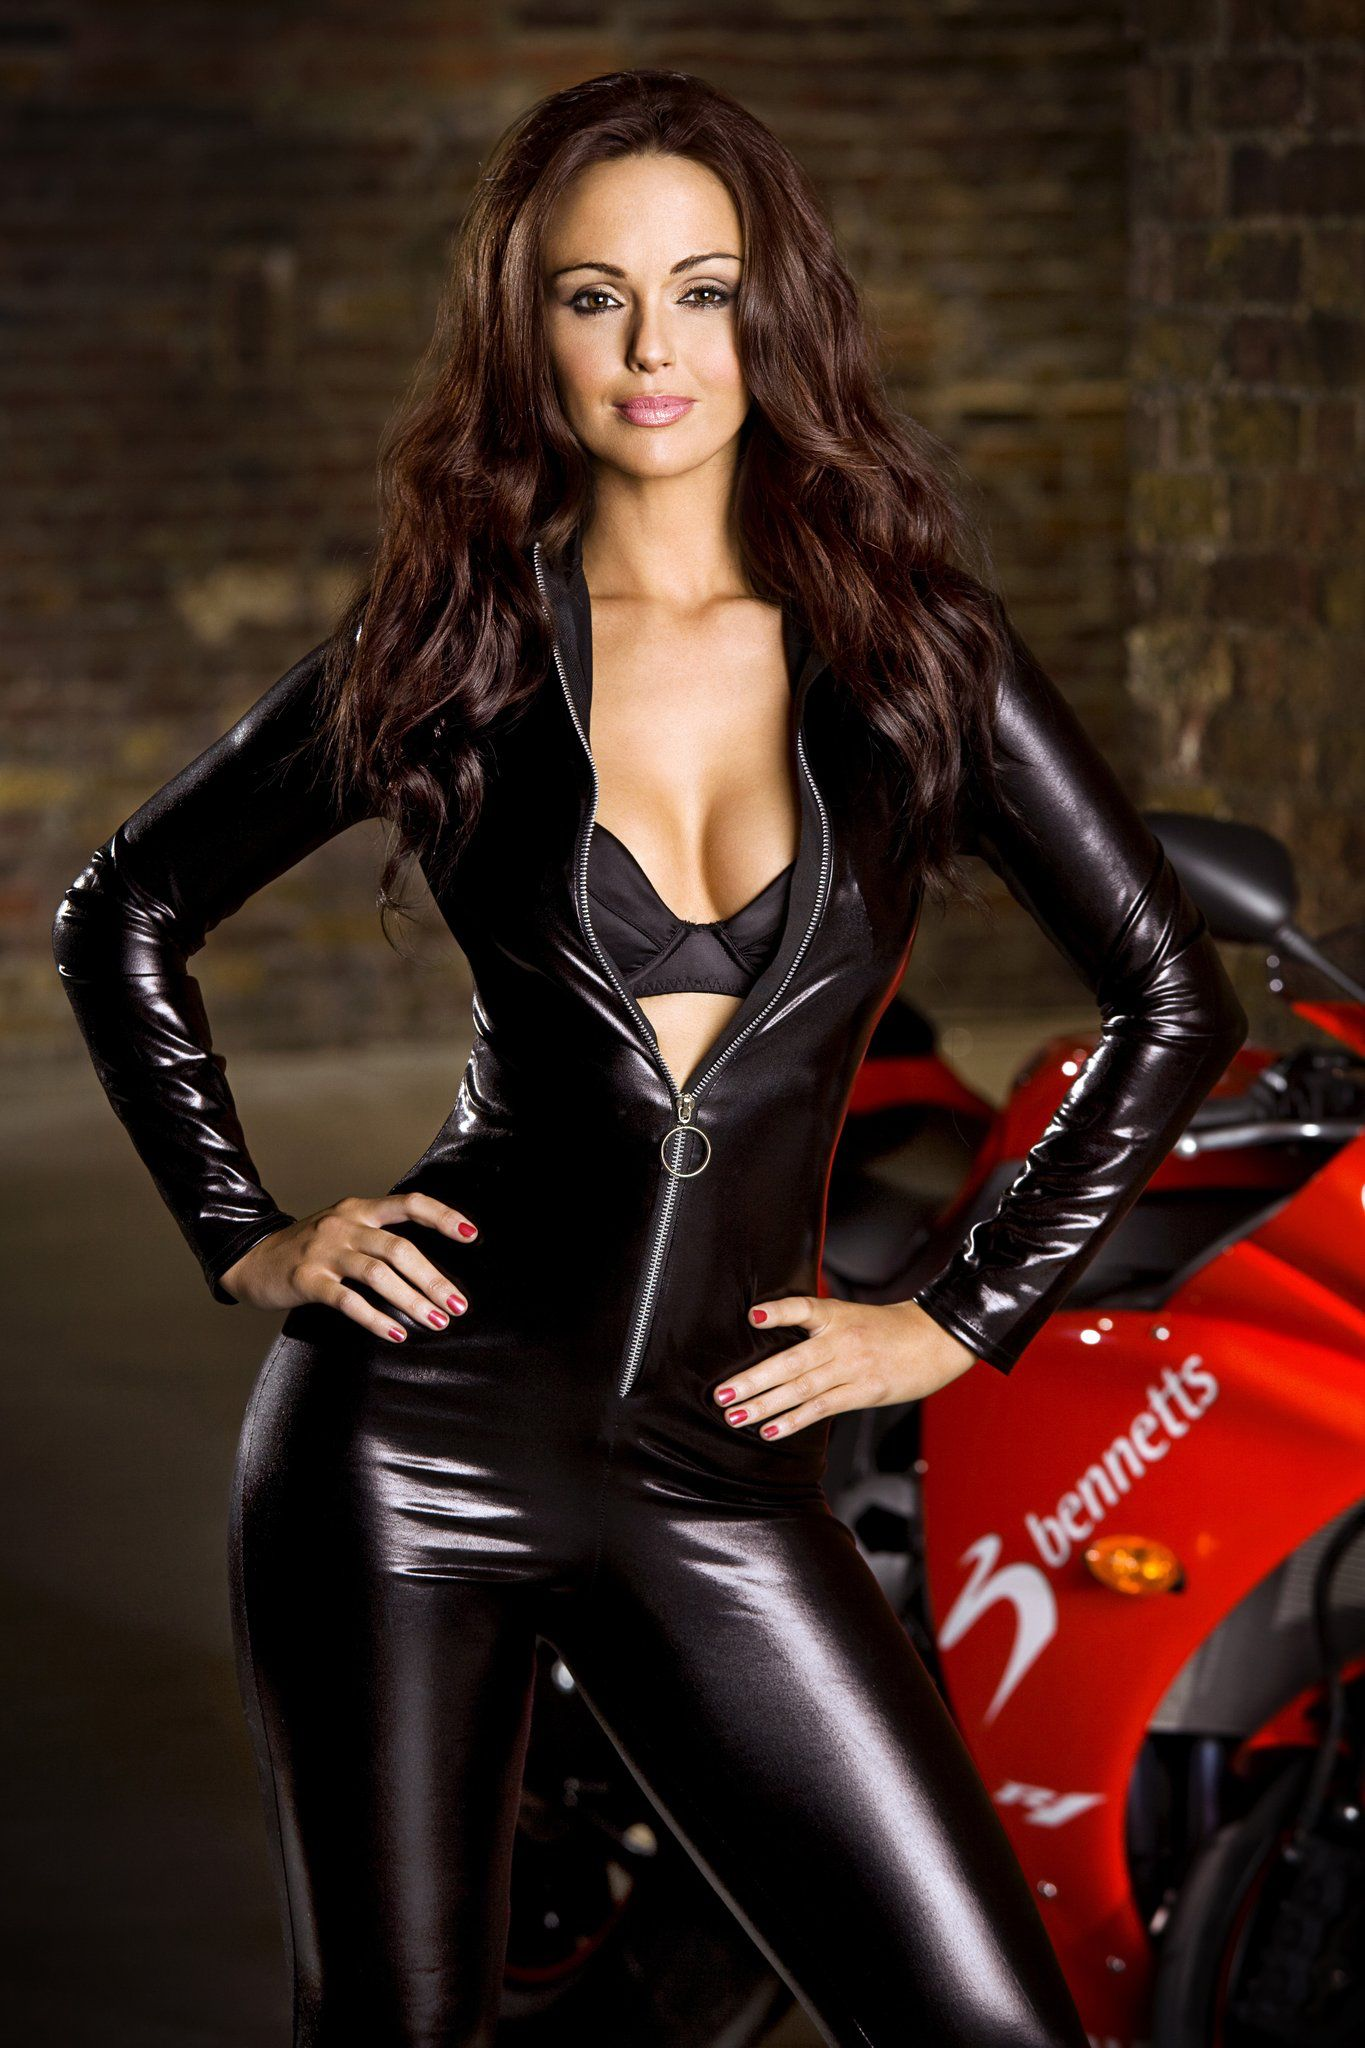 5f8b18ef6b5 Pin on Babes and Bikes